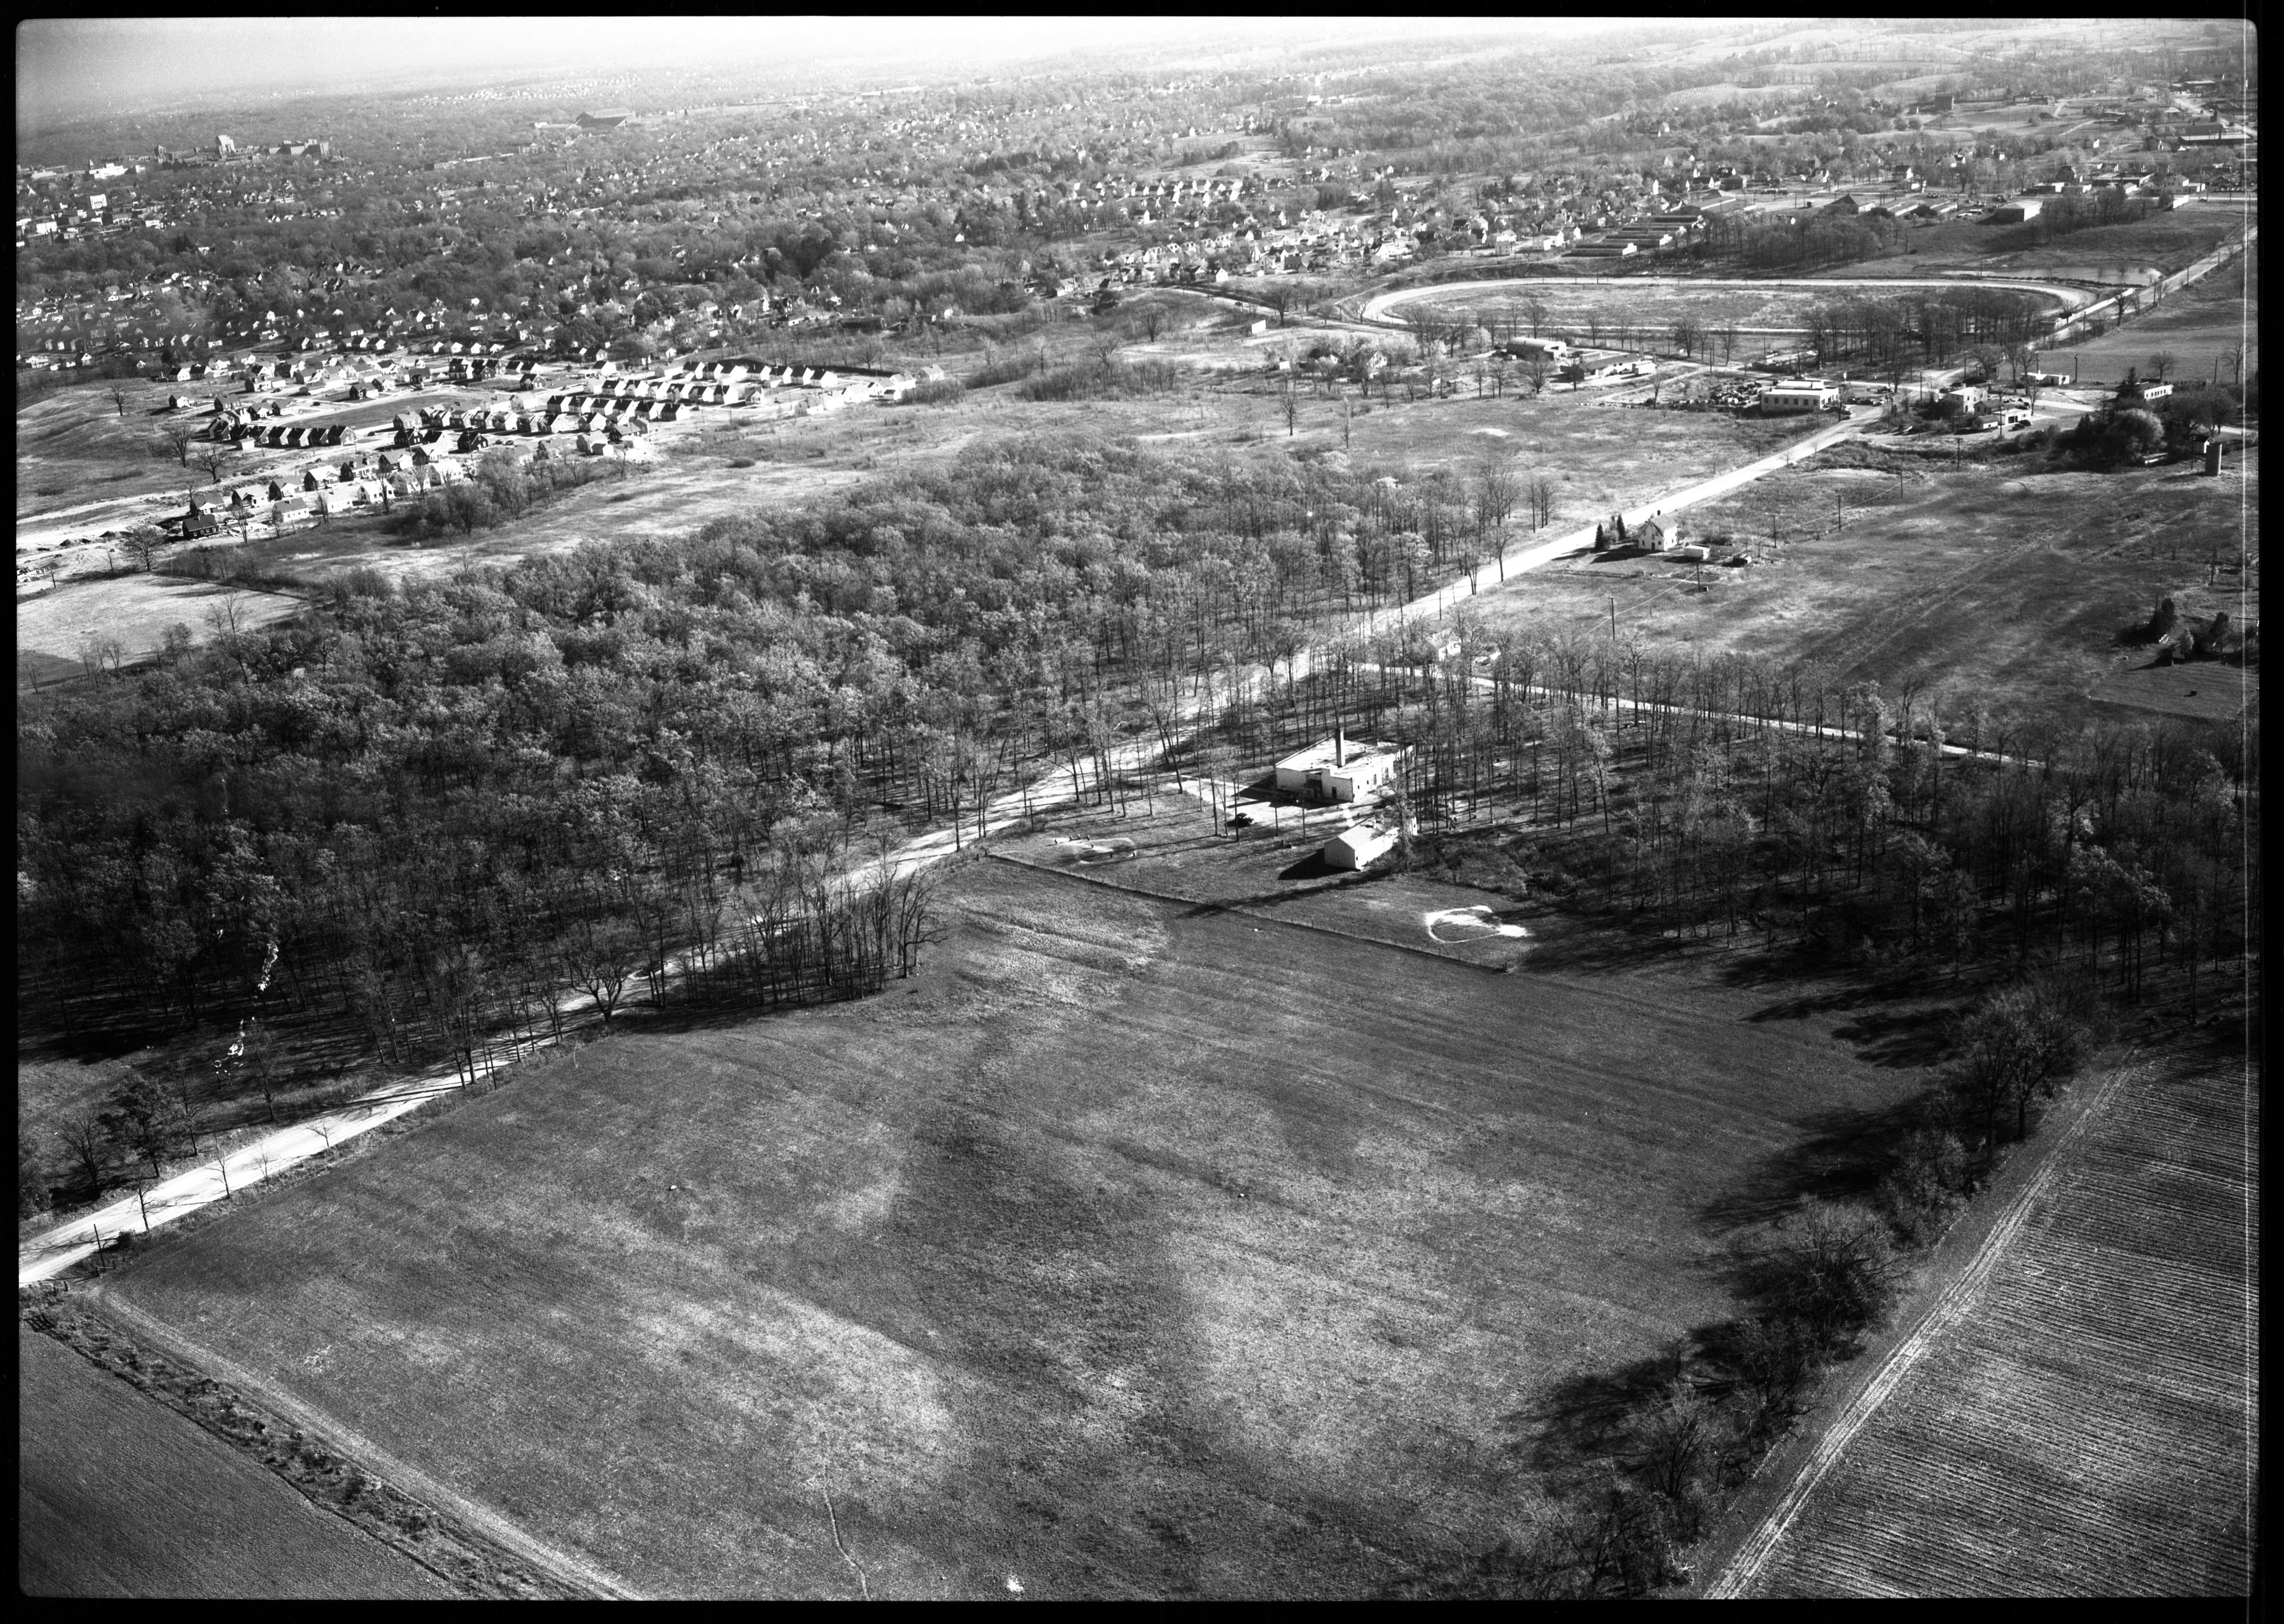 Aerial View of Fritz School Area and Fairgrounds (Future Veterans Memorial Park), October 1951 image